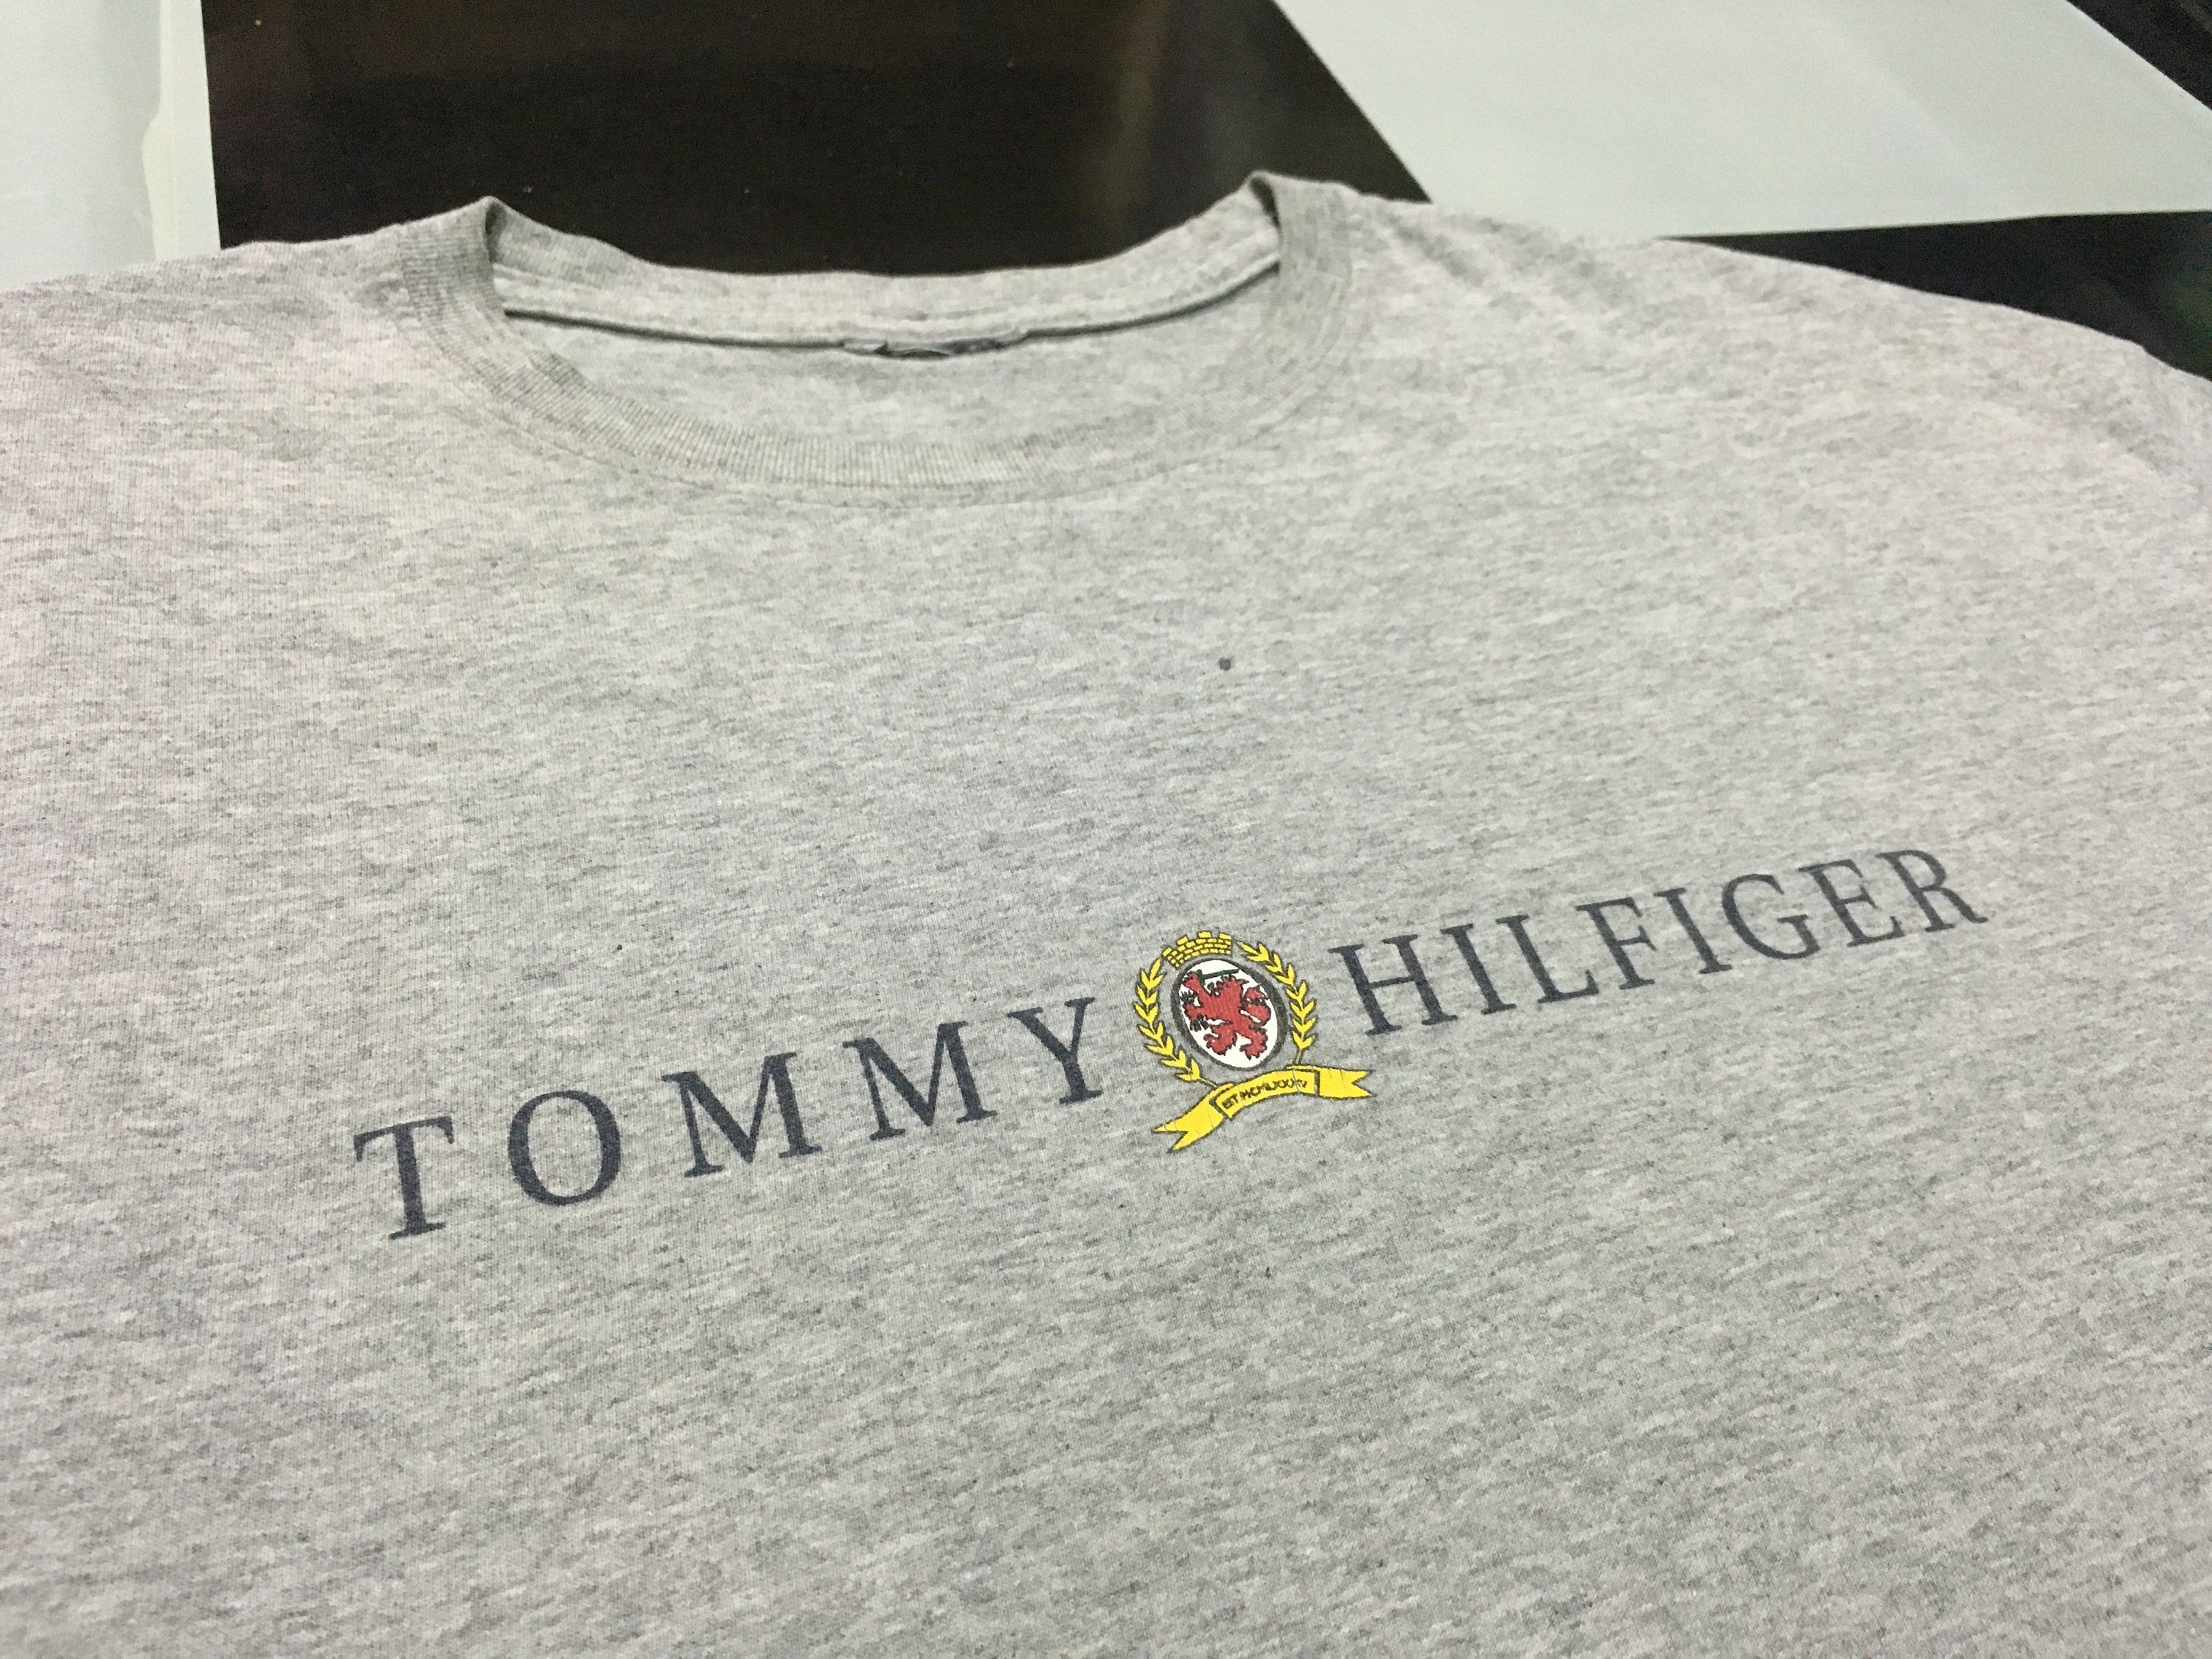 6e53ac334 Vintage Tommy hilfiger t shirt spell out logo lion crest Gray Size L Good  condition by AlivevintageShop on Etsy